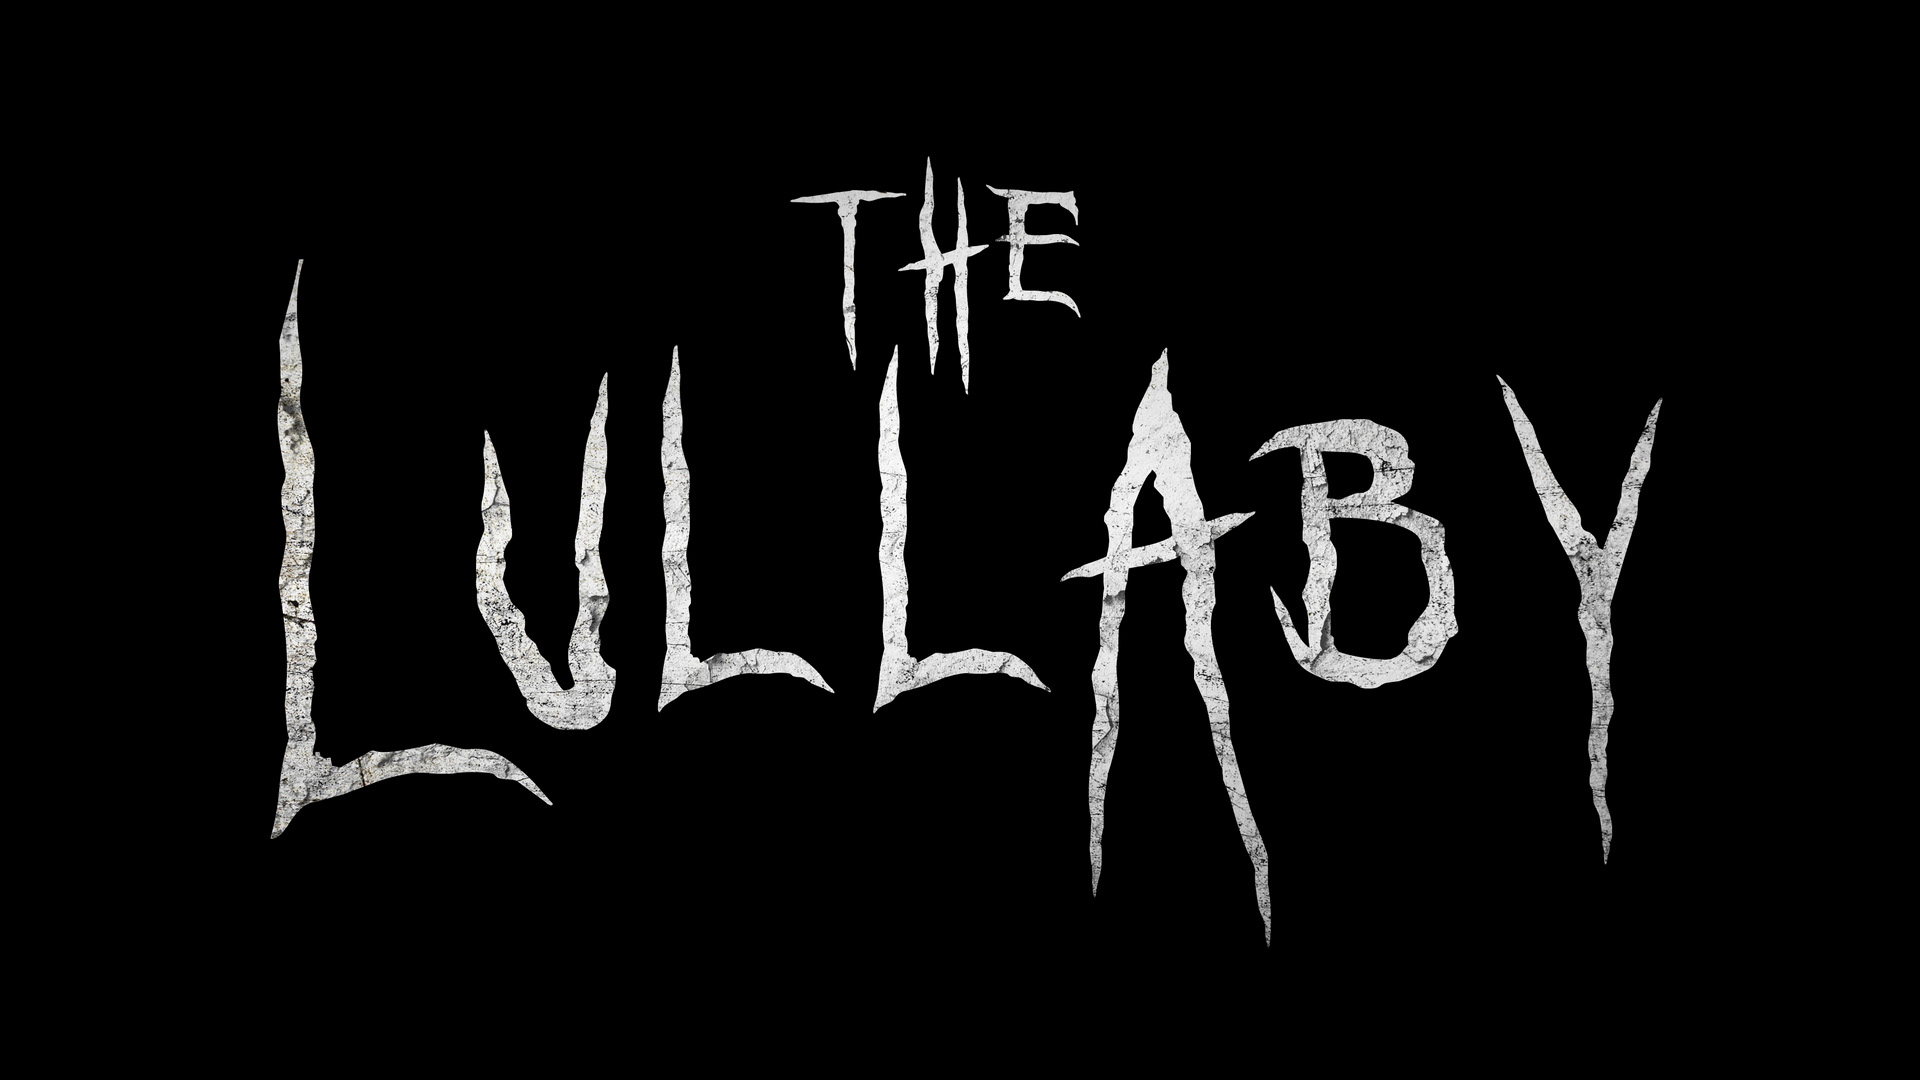 The Lullaby Trailer